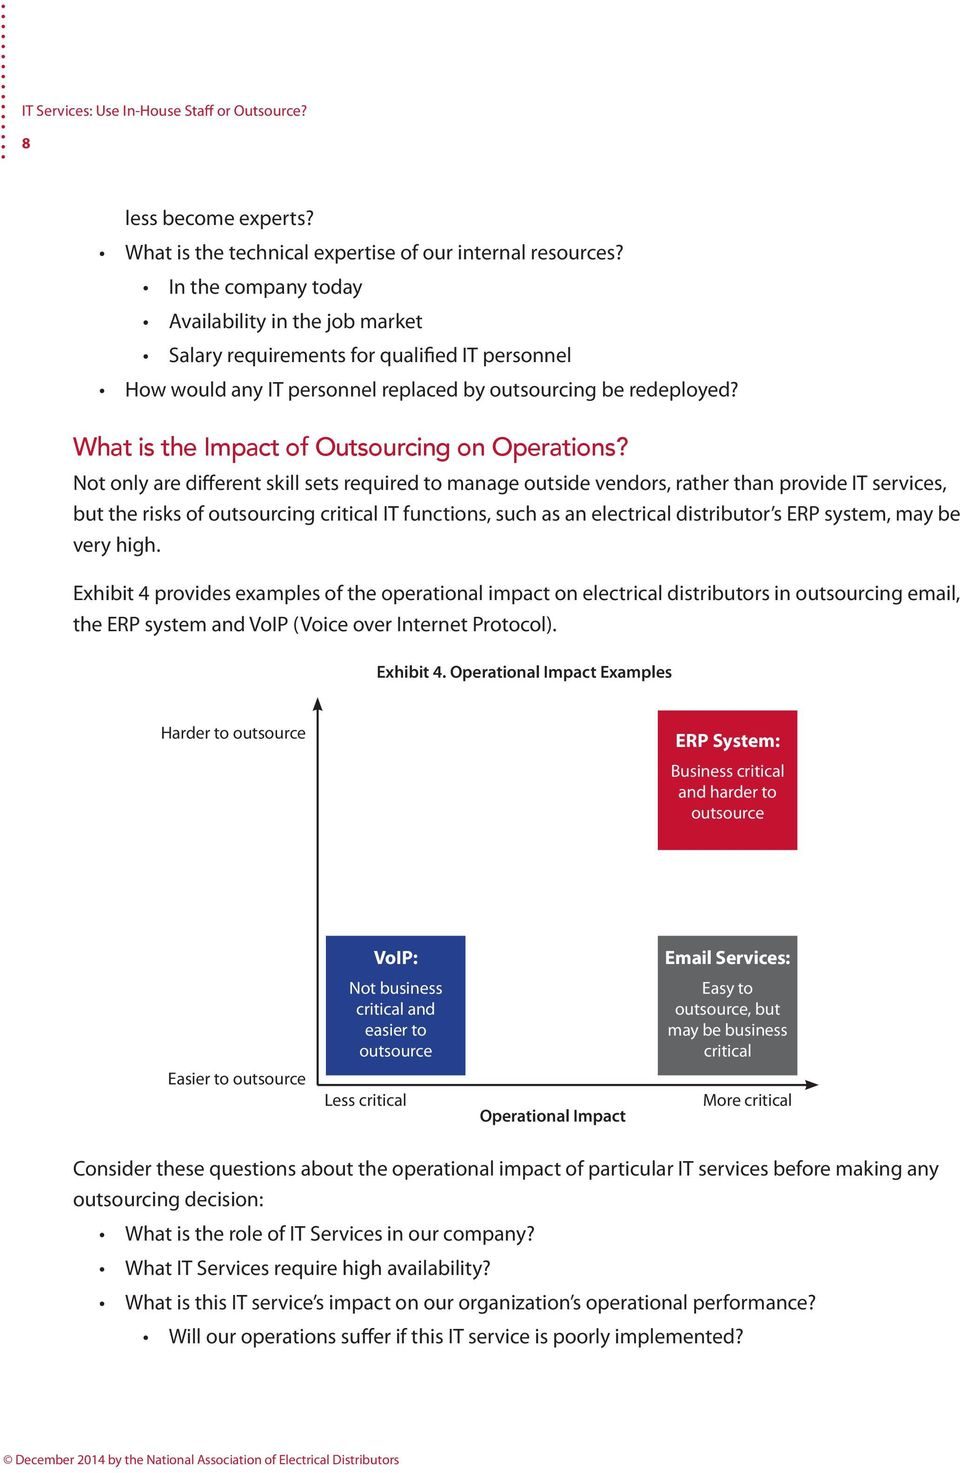 What is the Impact of Outsourcing on Operations?